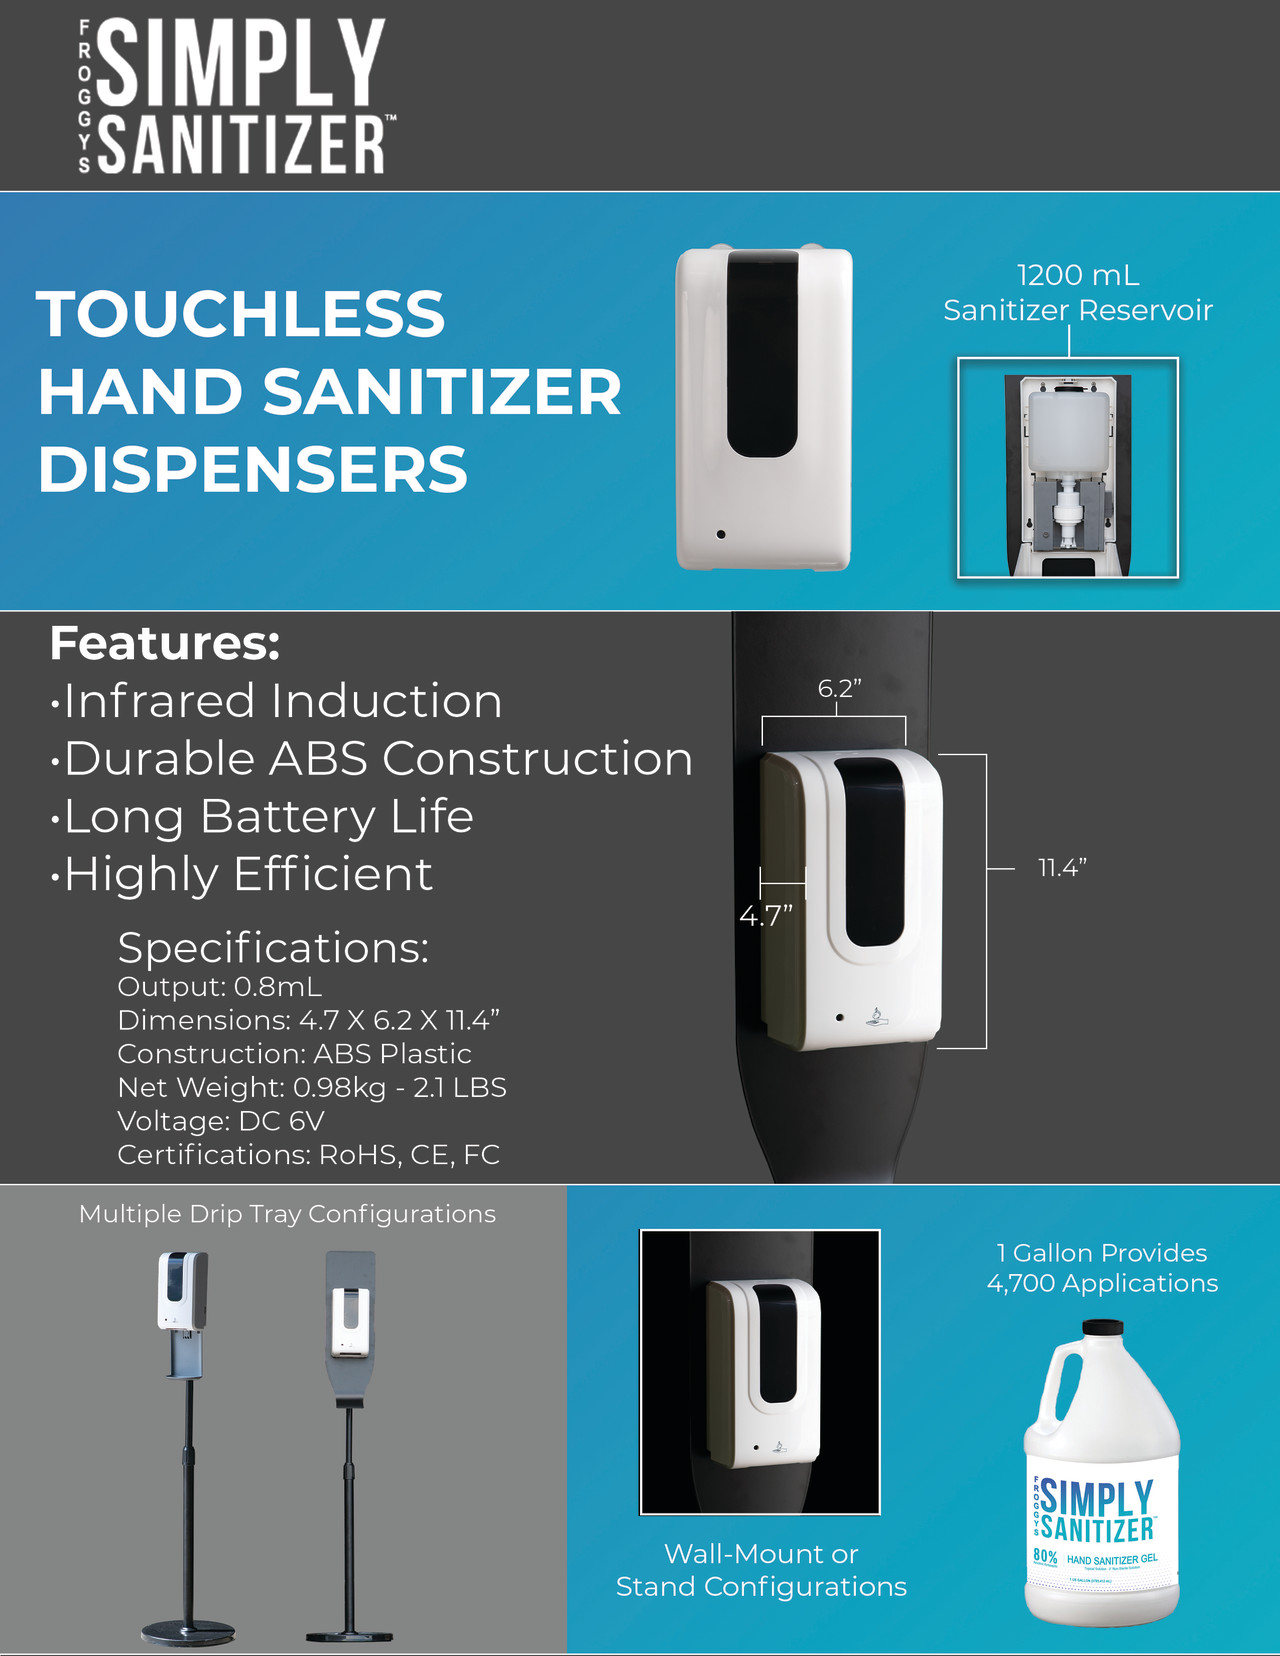 touchless dispensers